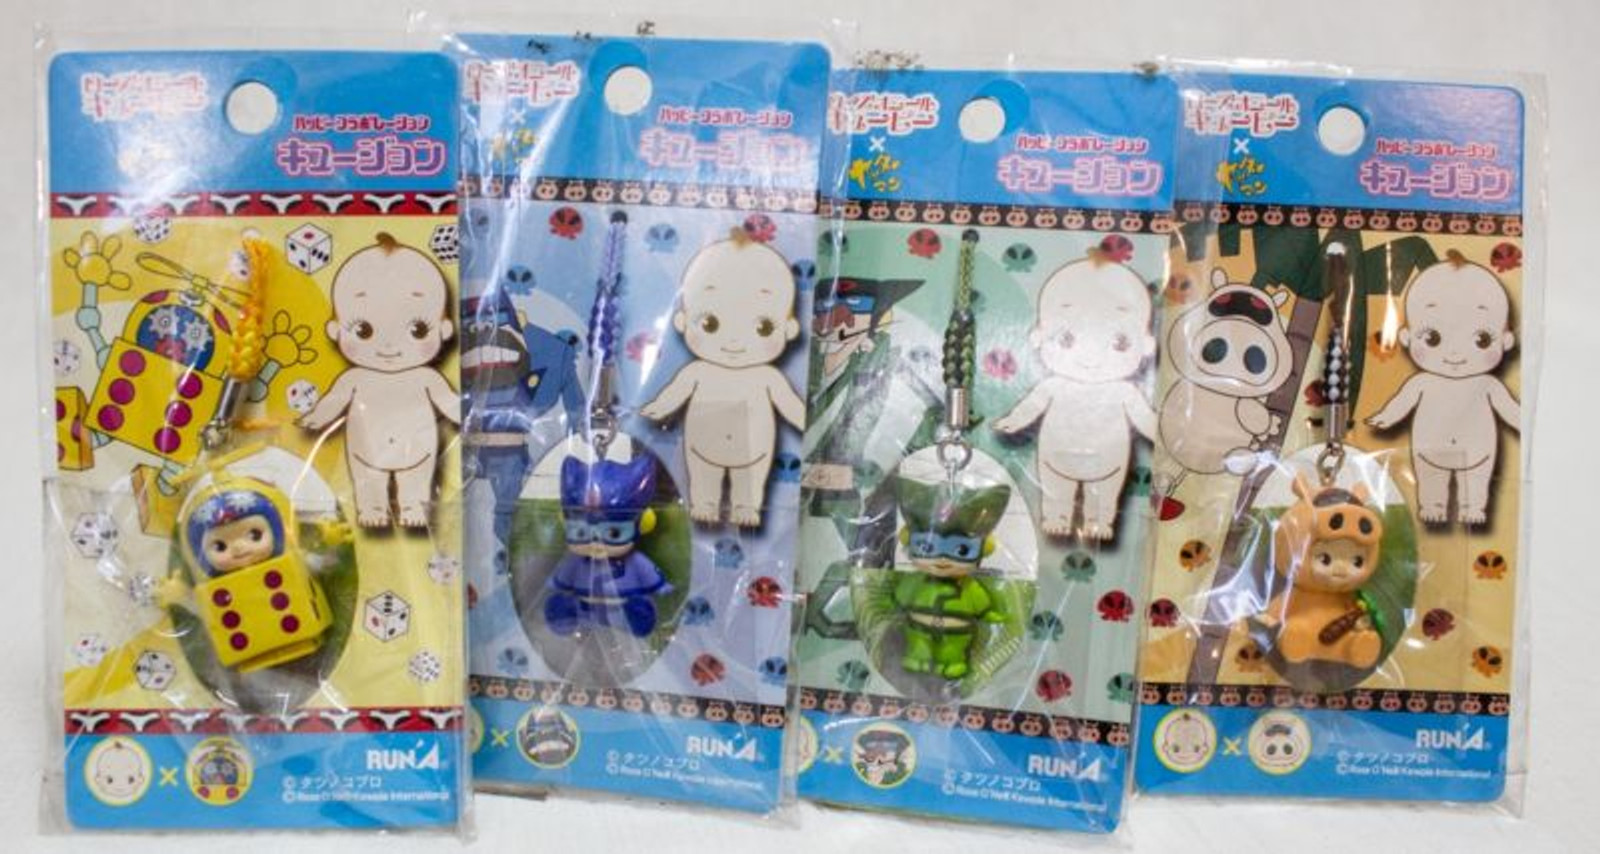 Set of 4 Yatterman Tatsunoko Rose O'neill Kewpie Kewsion Strap JAPAN ANIME